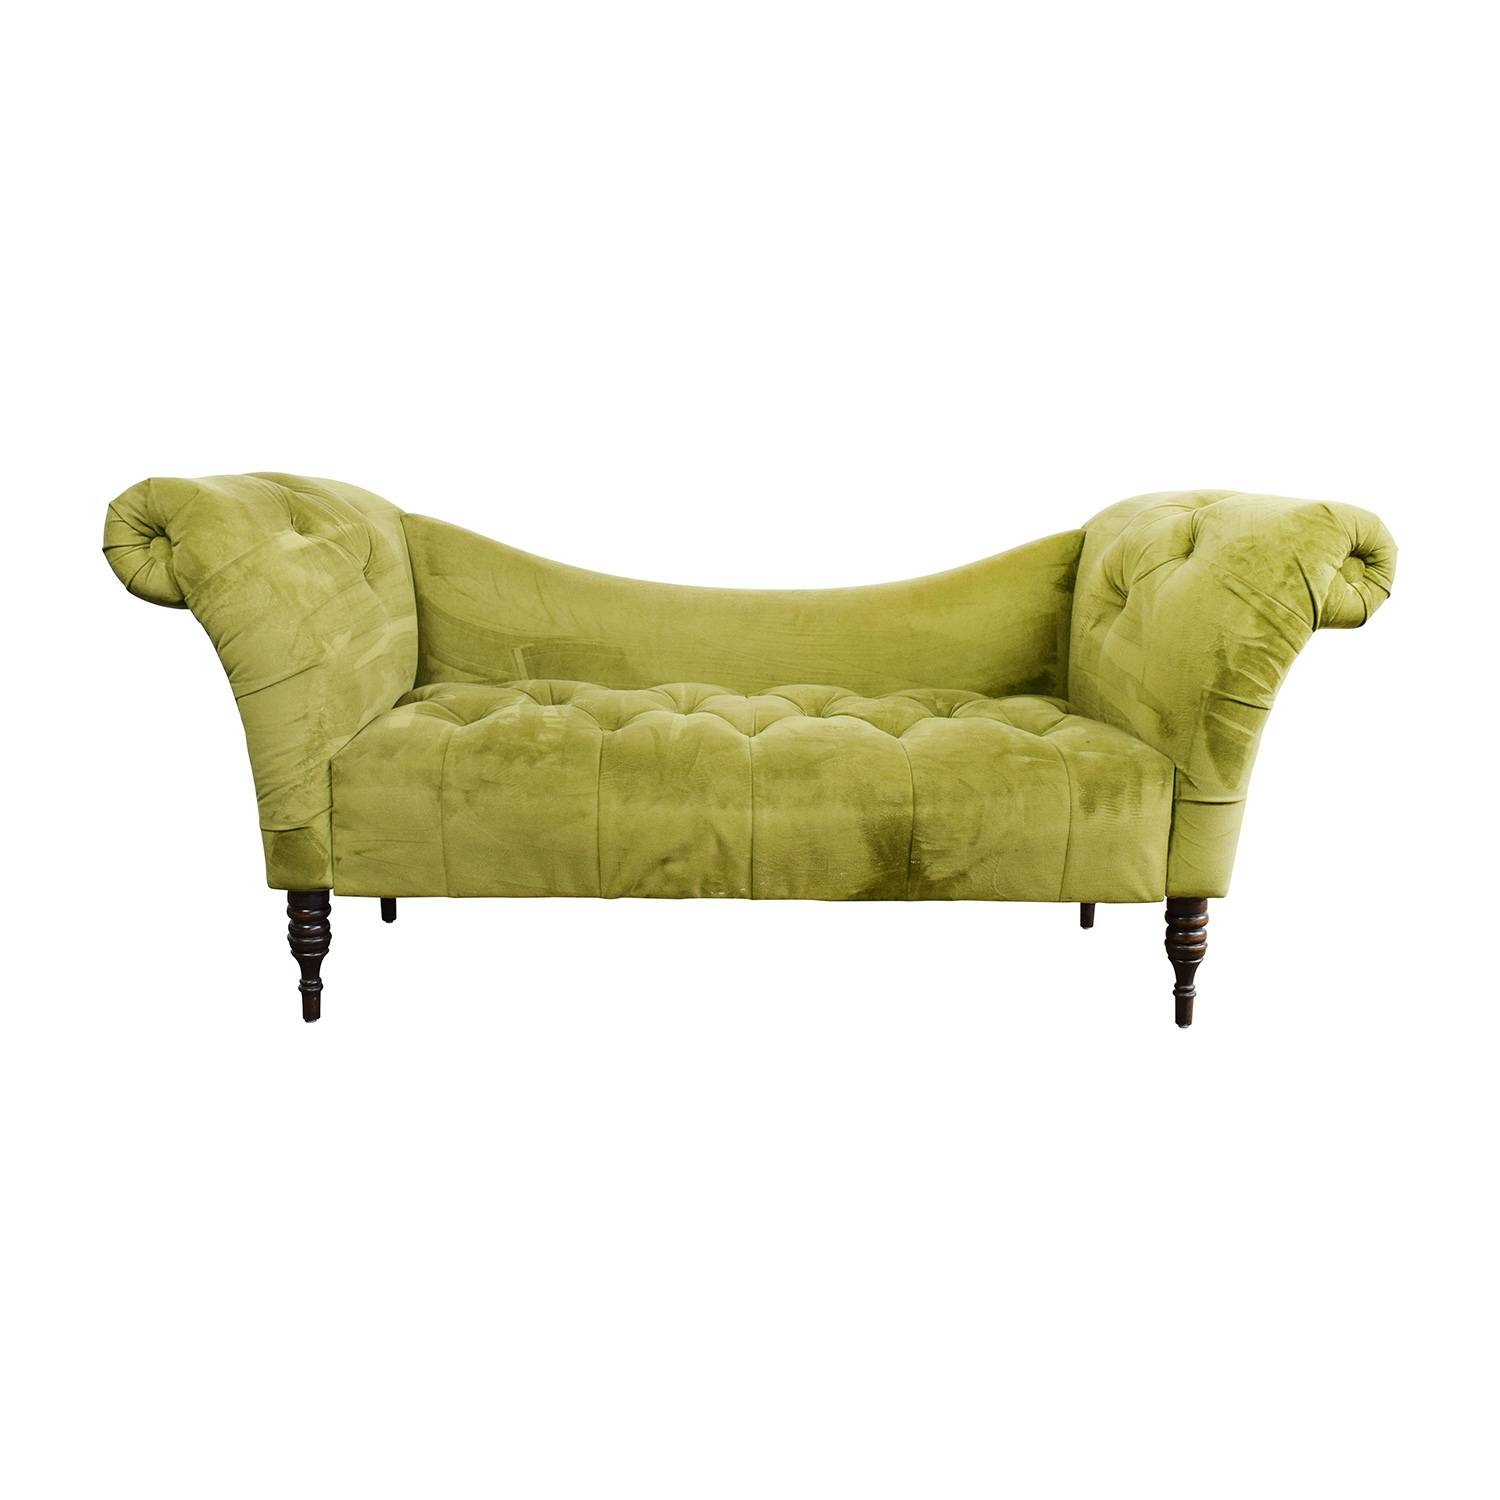 31% Off - West Elm West Elm Henry Gray Loveseat / Sofas regarding Antoinette Fainting Sofas (Image 10 of 15)